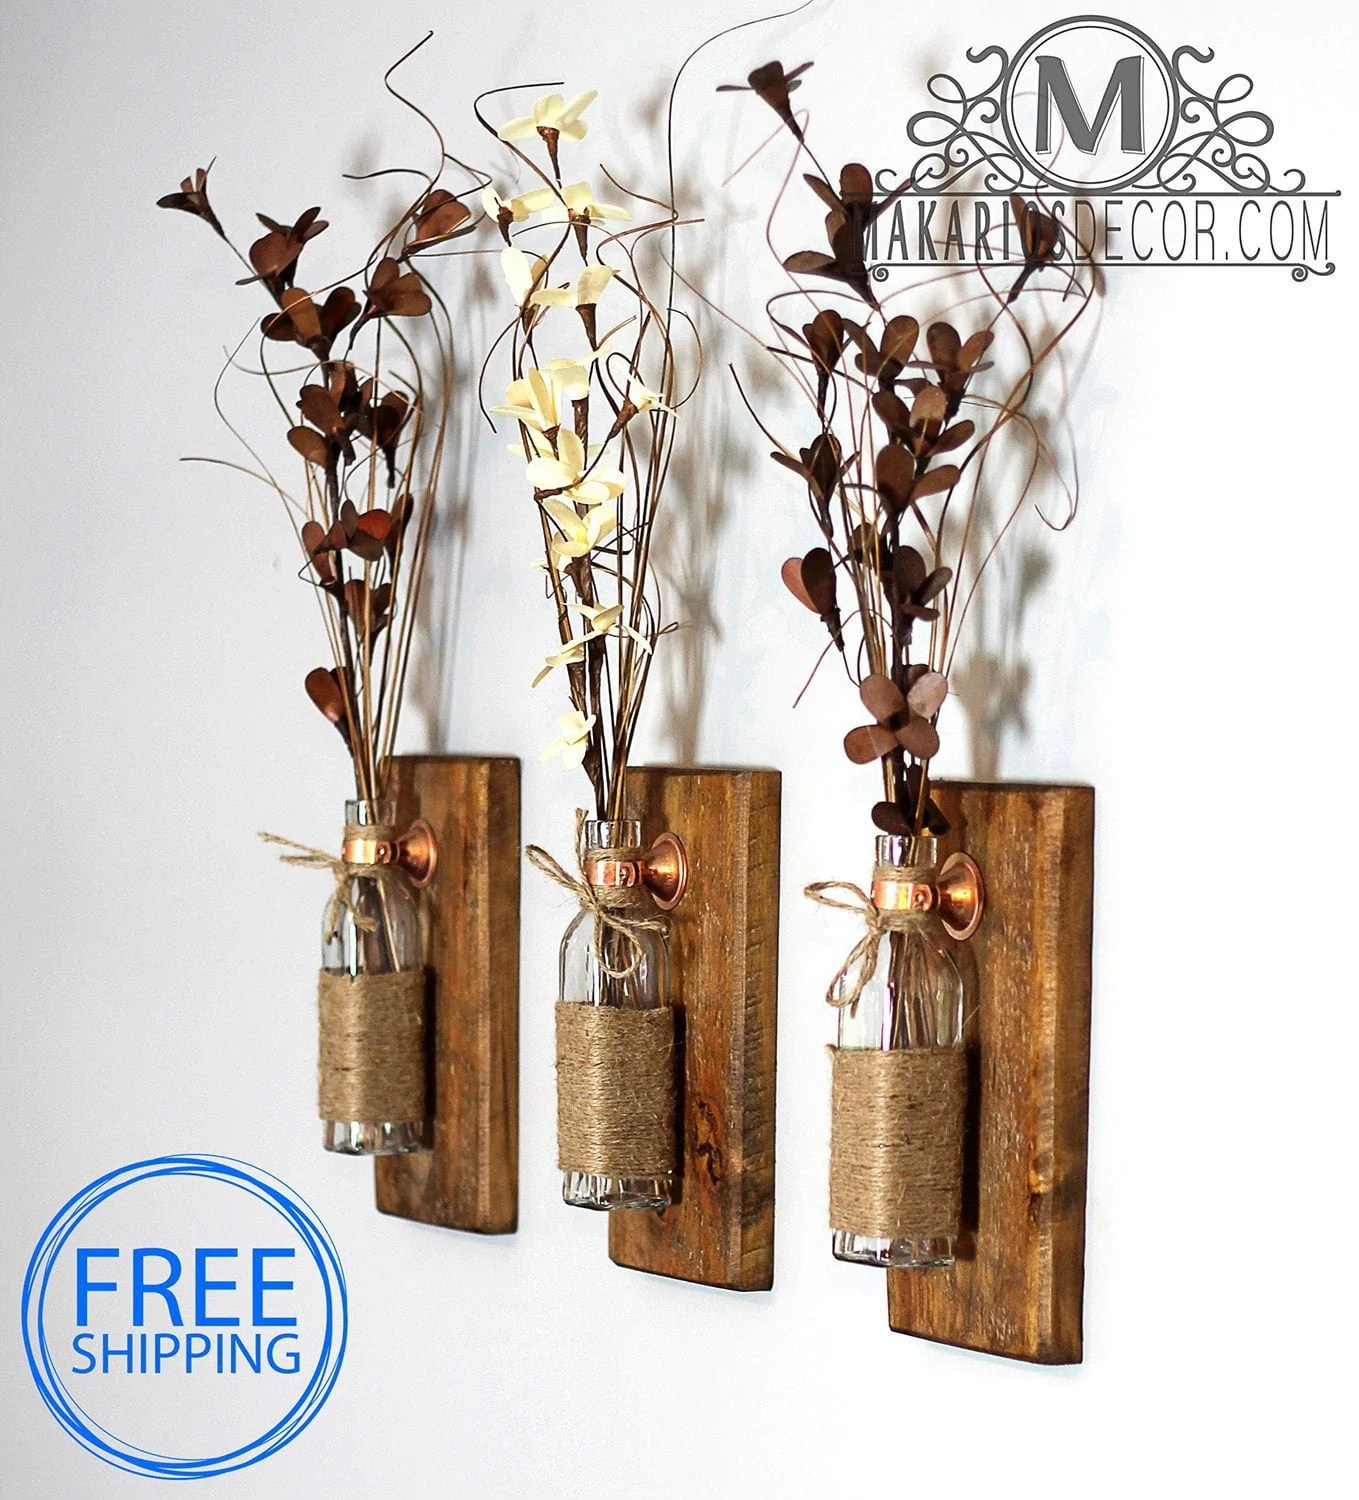 Rustic Wall Sconce Flowers - Natural Stem Flowers, Sconce ... on Flower Wall Sconces id=41138